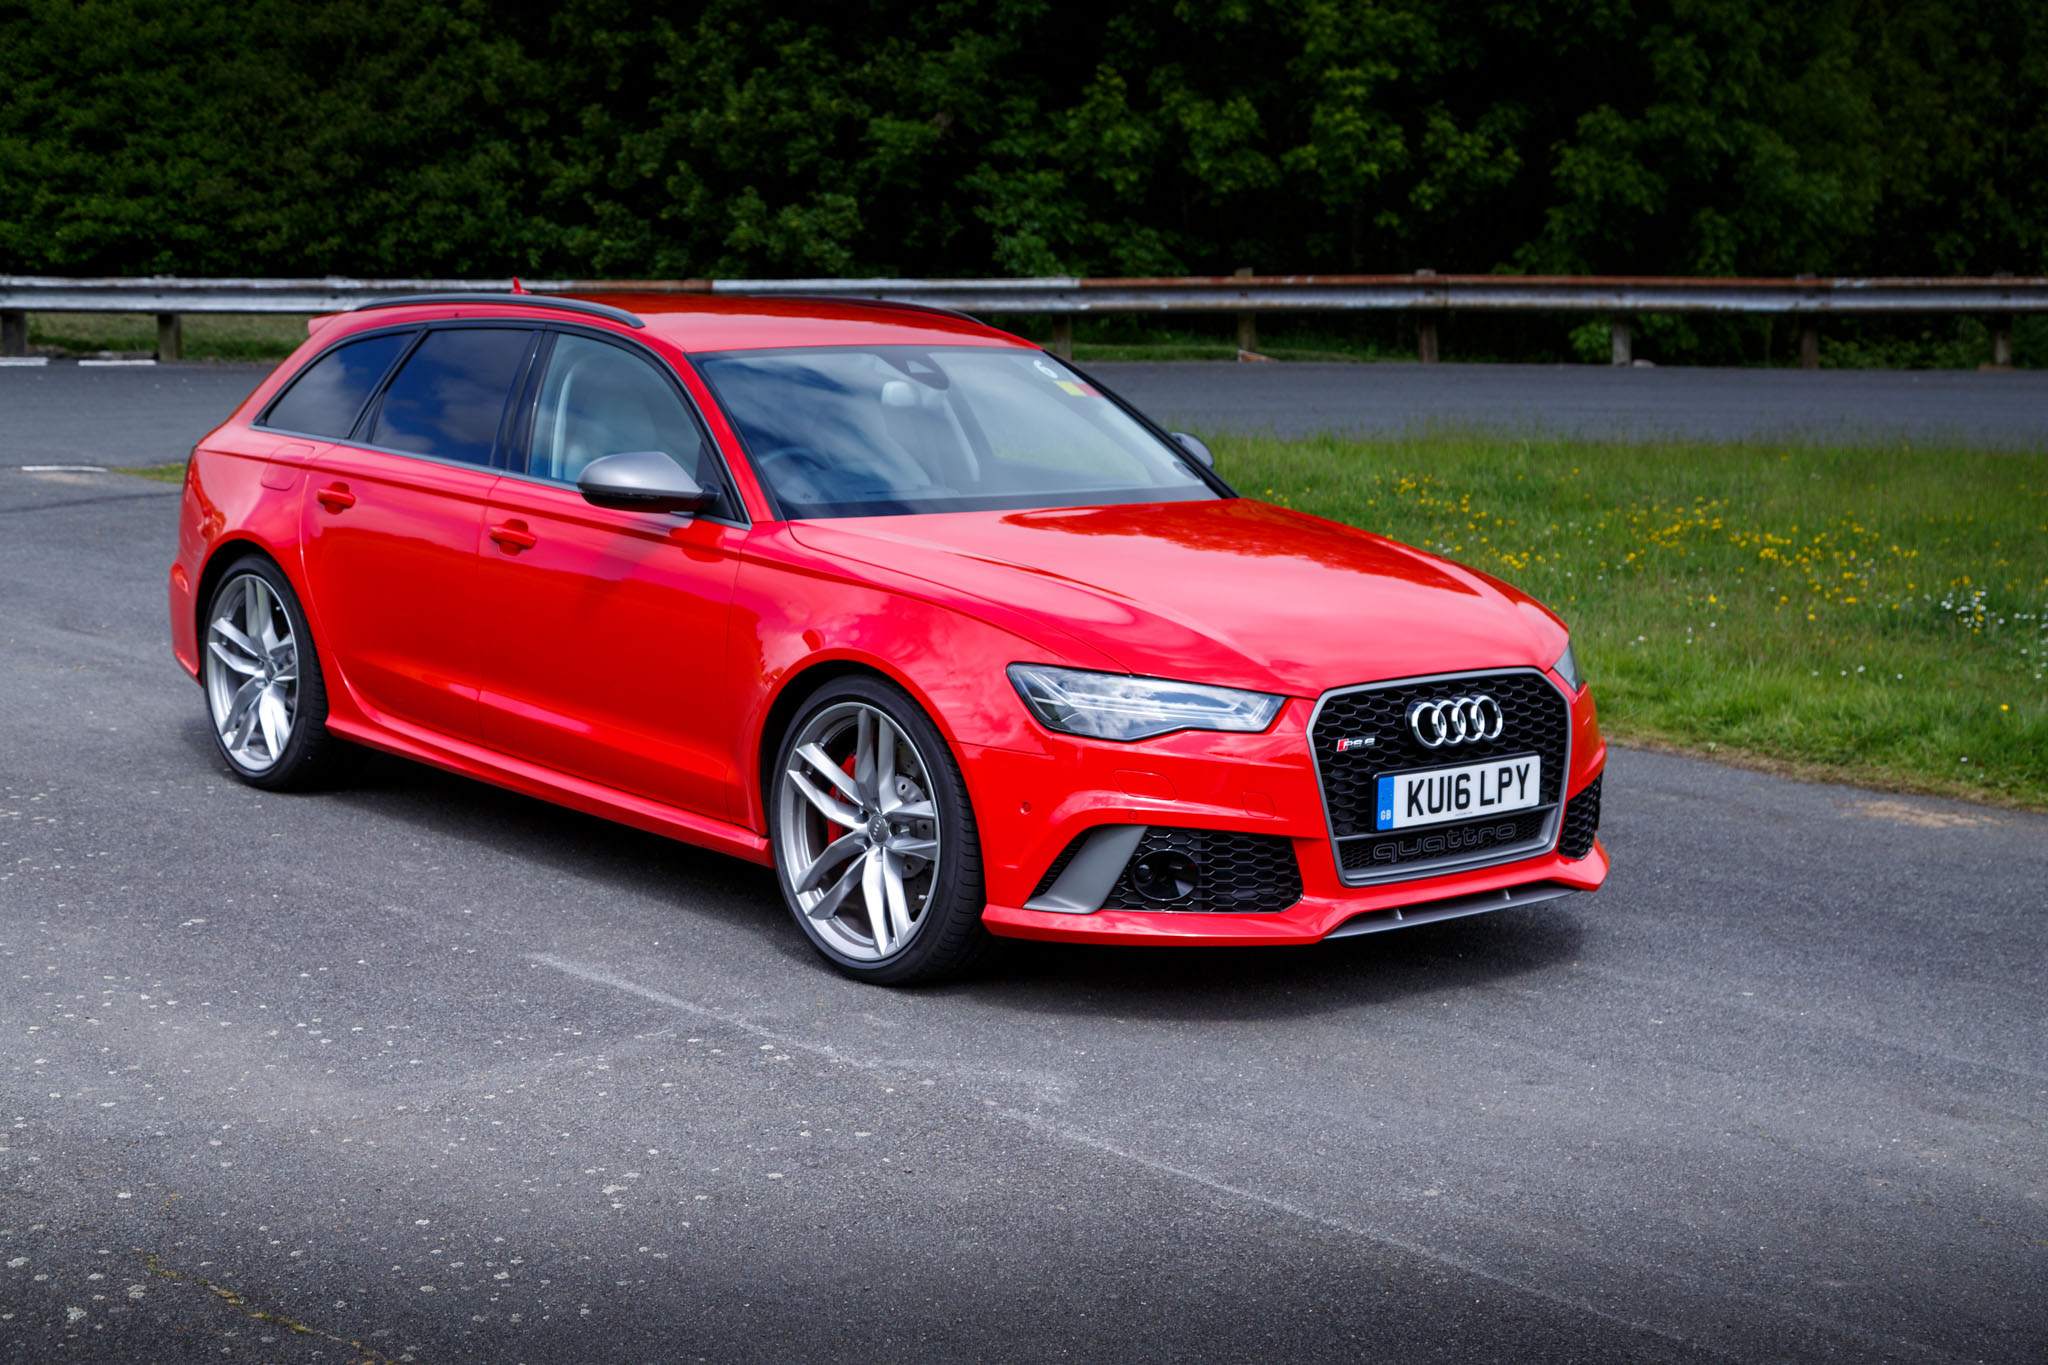 2016 Audi RS6 Avant Review